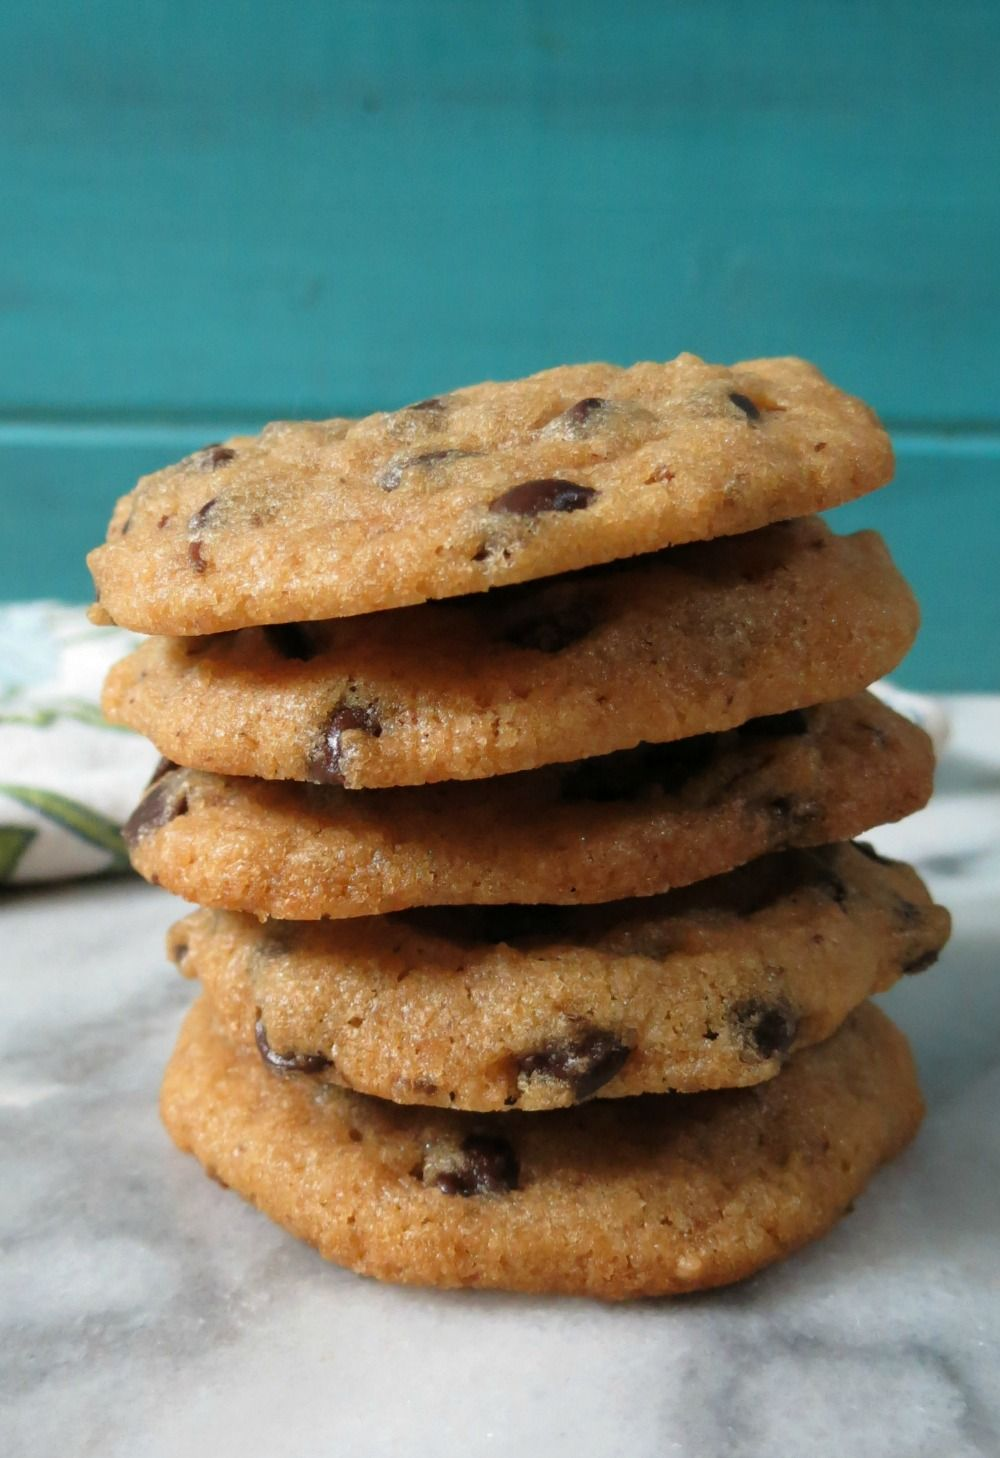 Vegan Chocolate Chip Cookies - A healthy, non-dairy whole grain cookie with a crispy edge and soft center, chock full of mini Chocolate Chips.